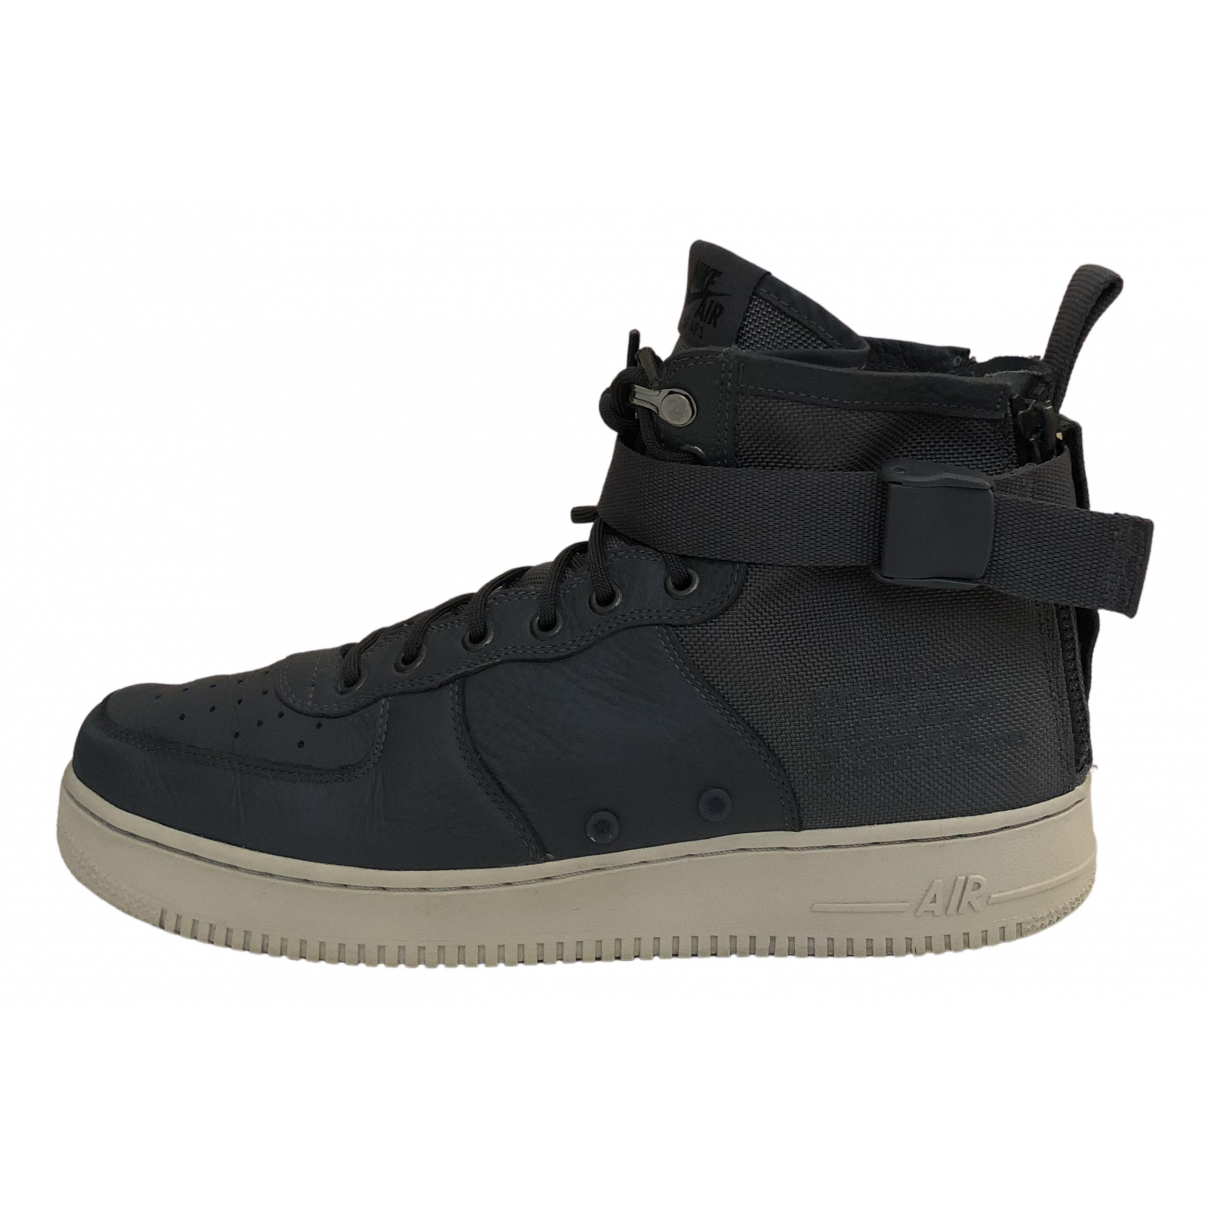 Nike SF Air Force 1 Grey Leather Trainers for Men 45 EU